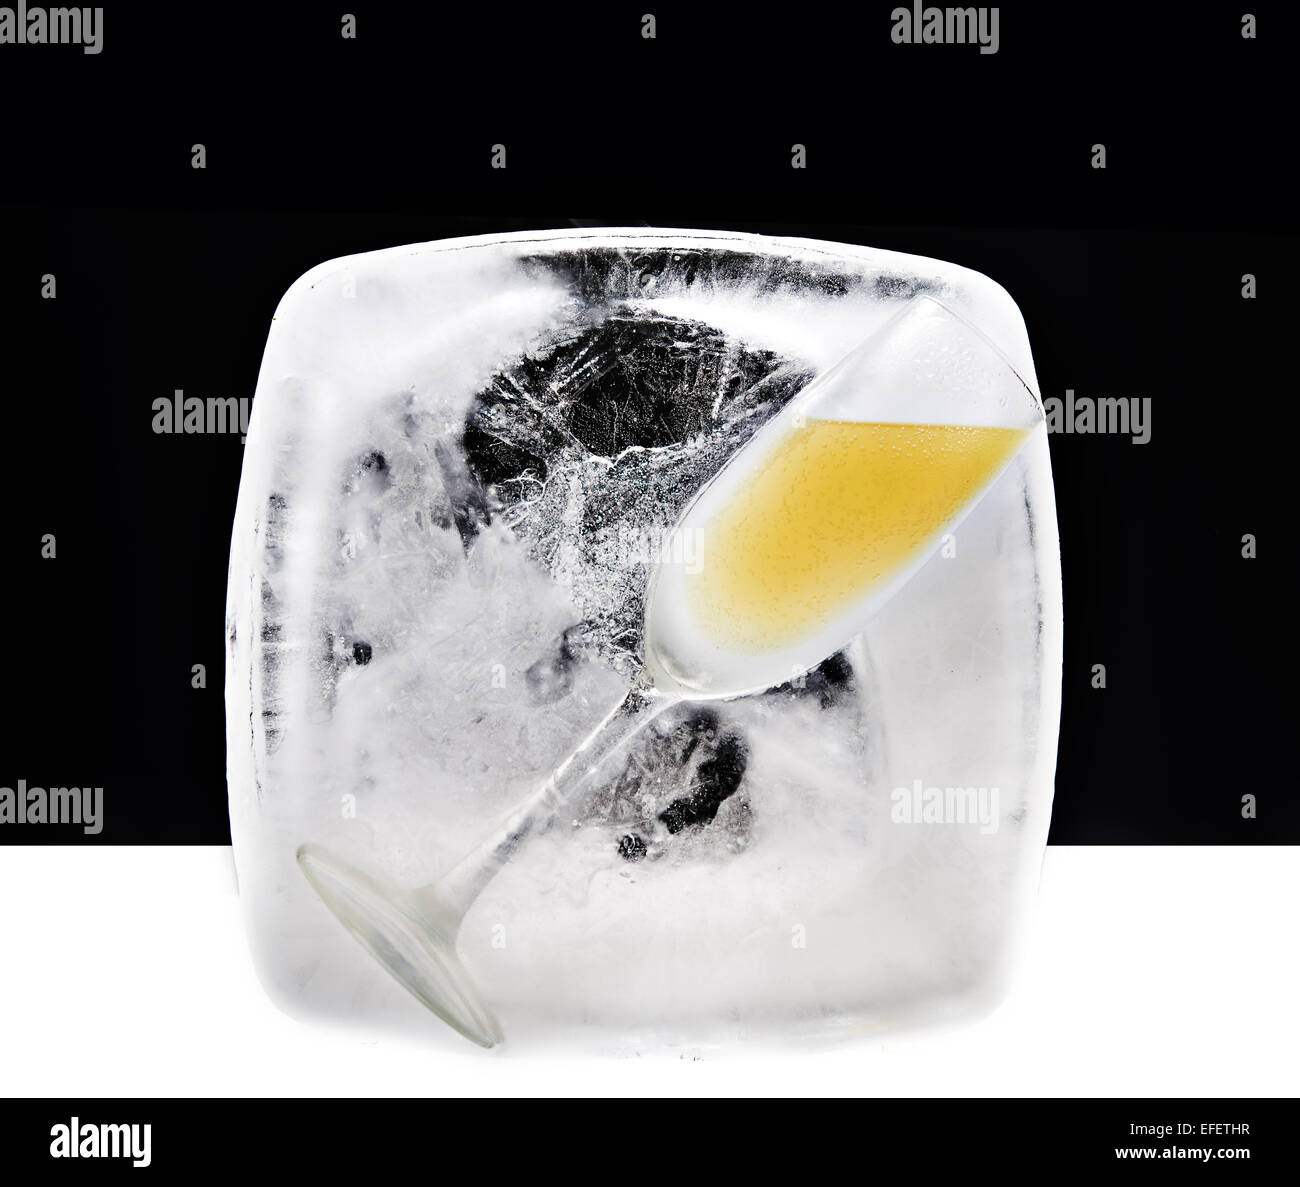 Champagne class filled with champagne in a block of ice - Stock Image